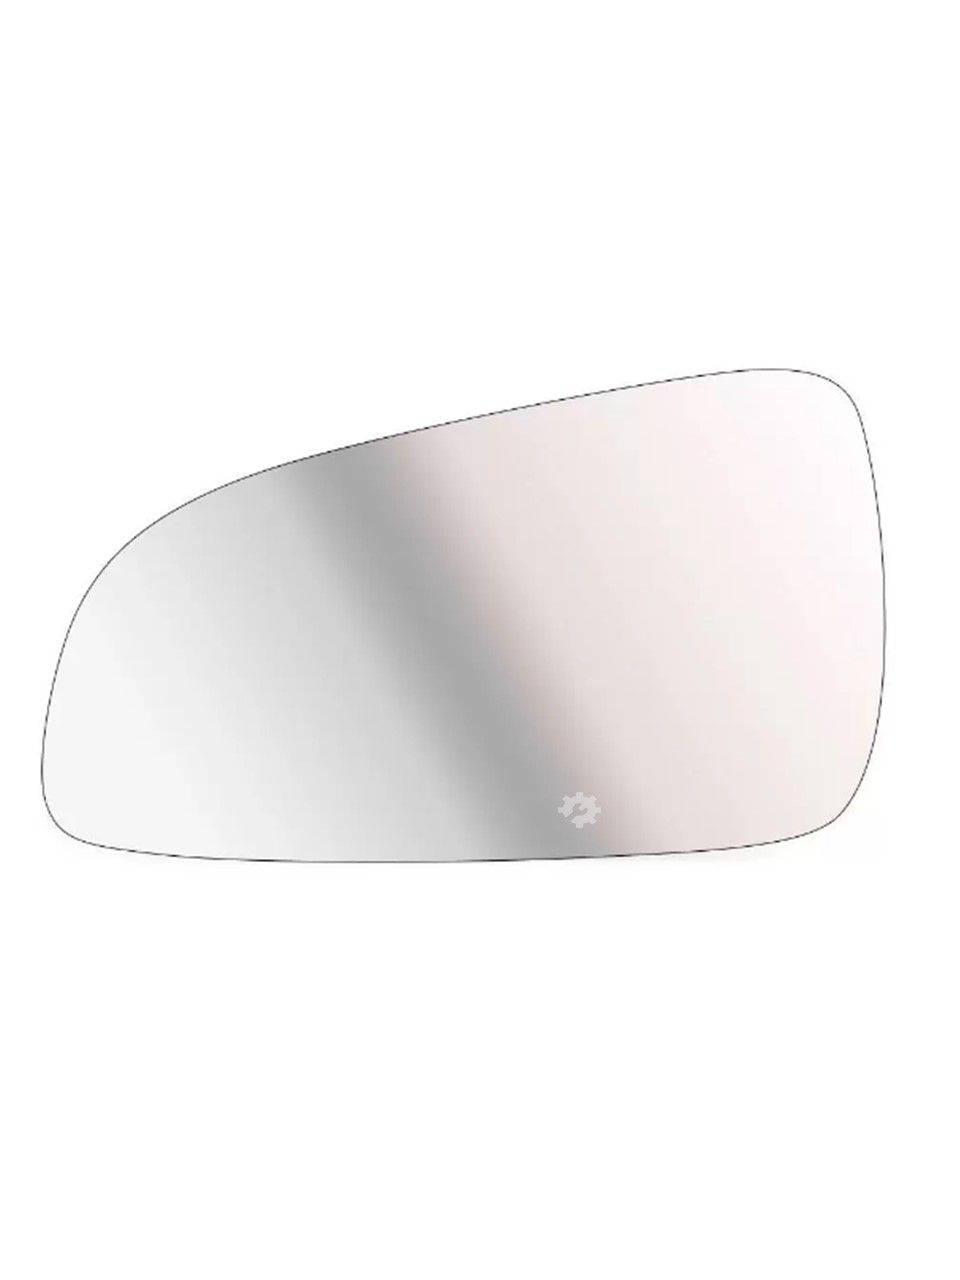 Lente base Retrovisor Esquerdo Chevrolet Vectra 2006 08 2009